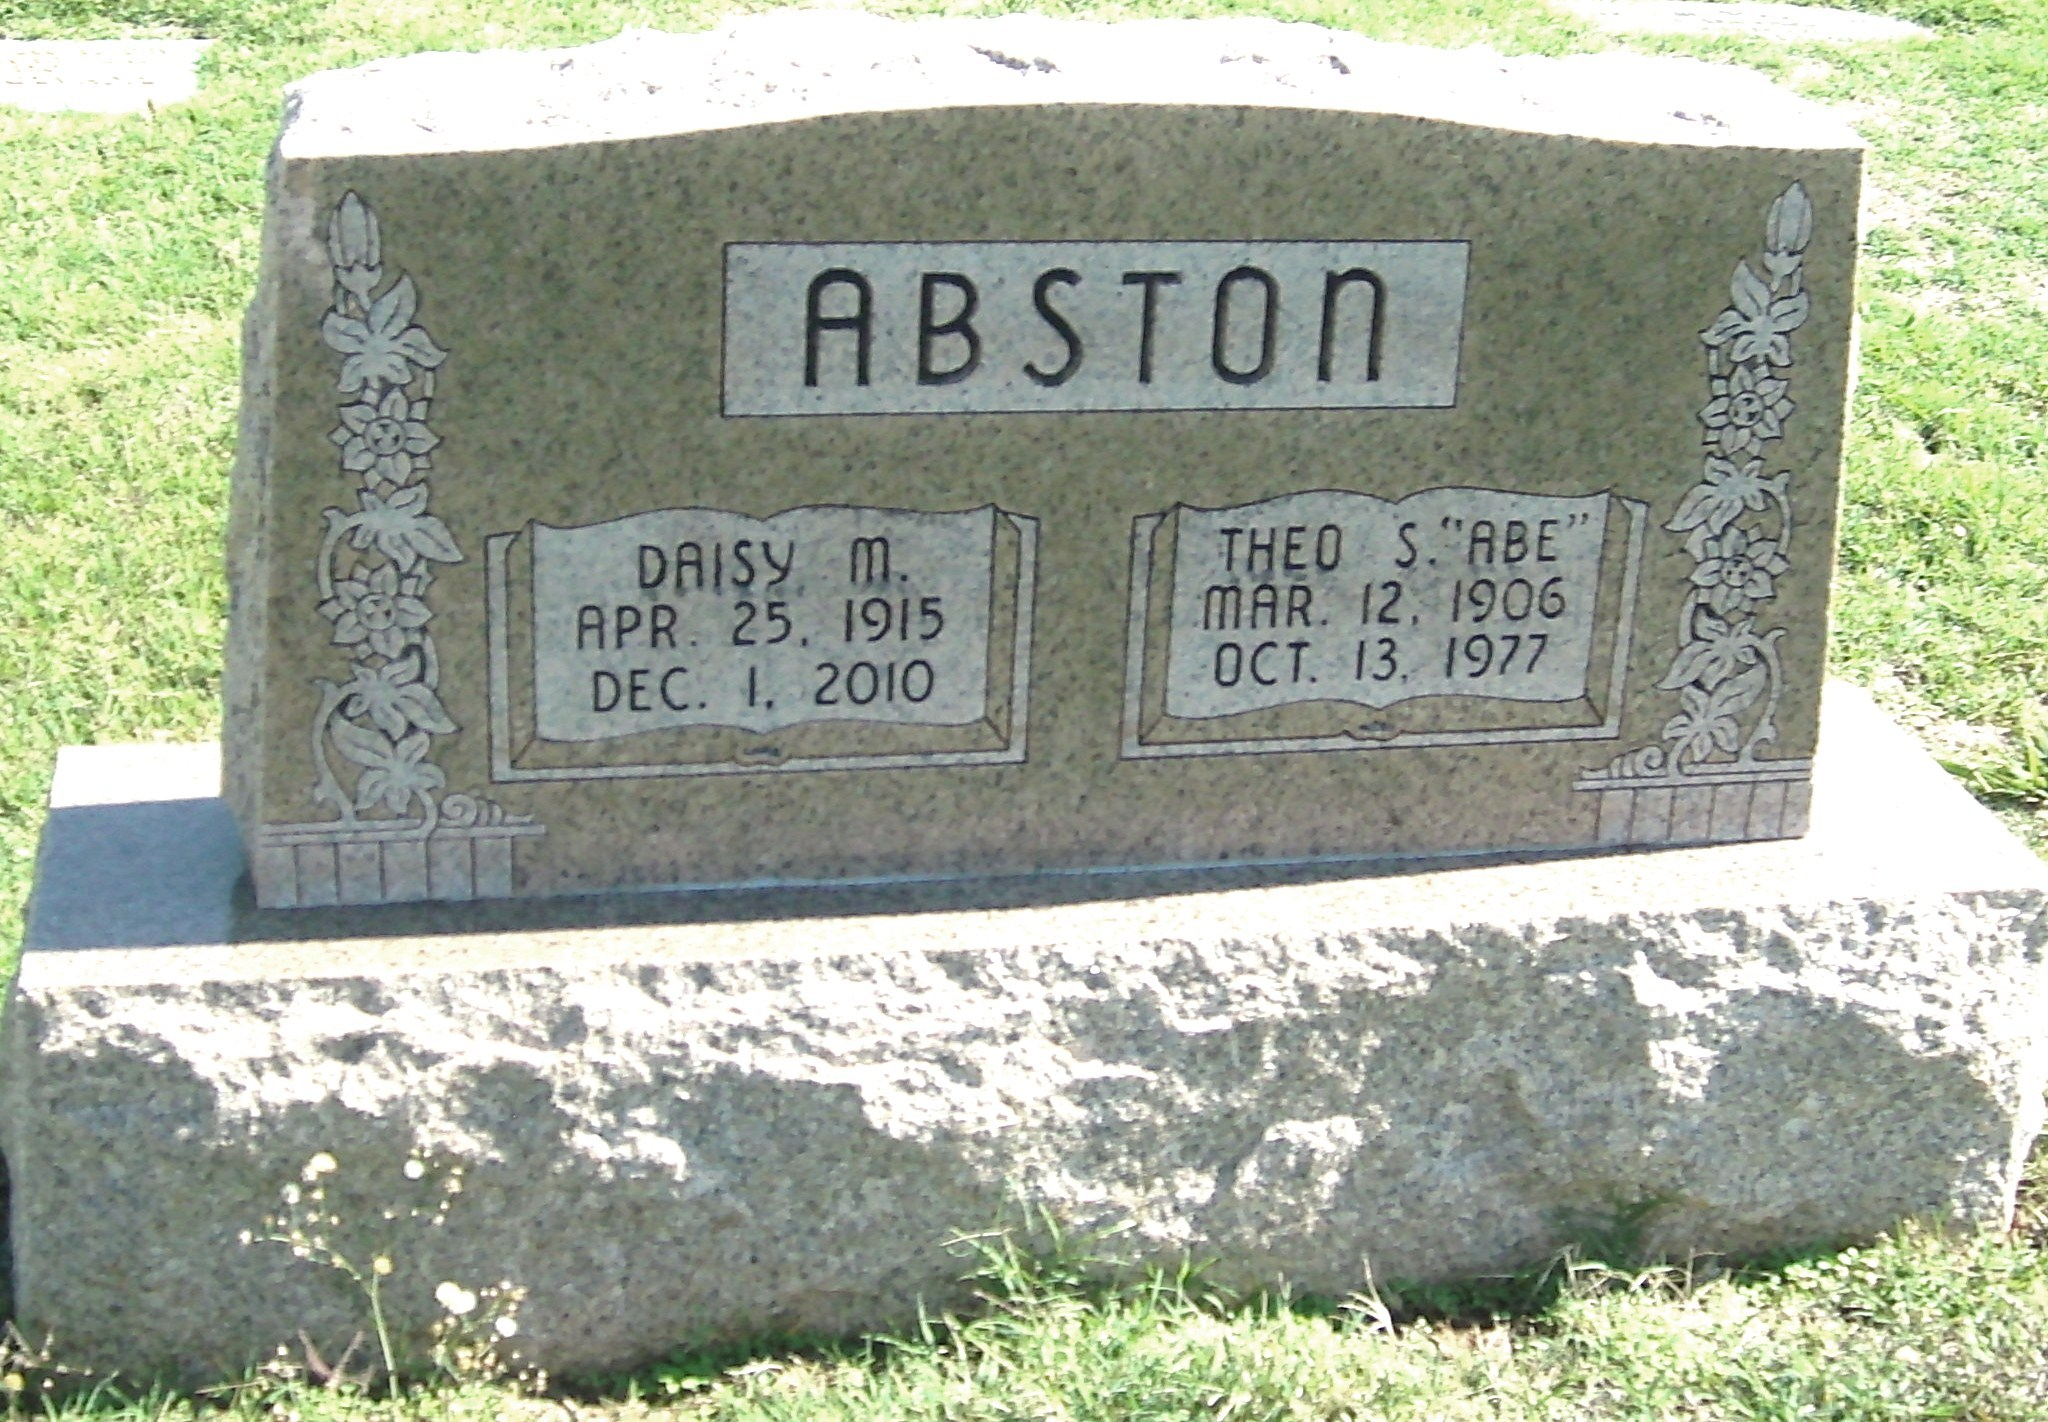 Daisy M. Abston